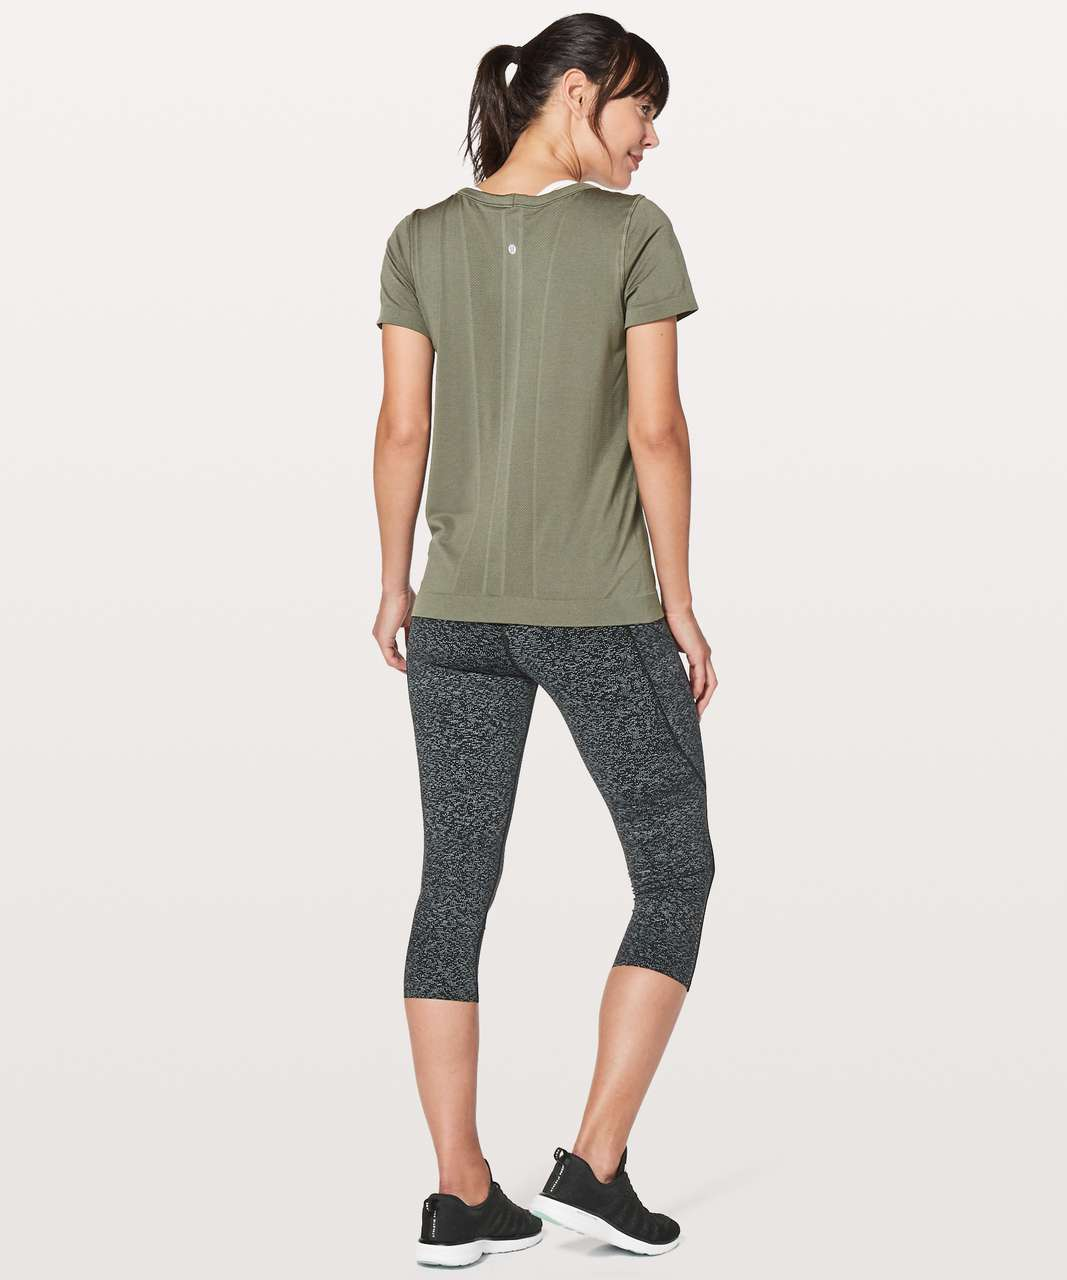 Lululemon Swiftly Tech Short Sleeve (Breeze) *Relaxed Fit - Sage / Sage